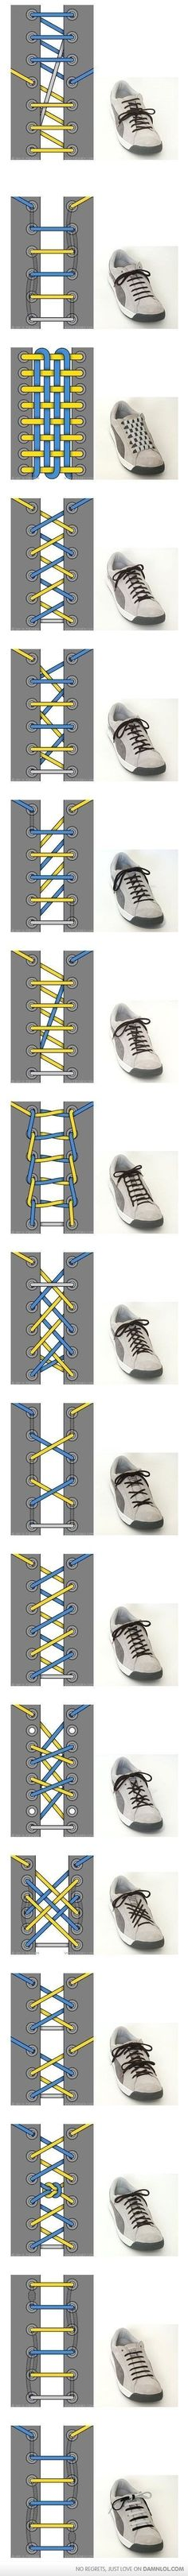 cool ways to tie shoe laces. www.ditokadum.com : let the Art reveal your intuition! #art #tarot #graphicdesign